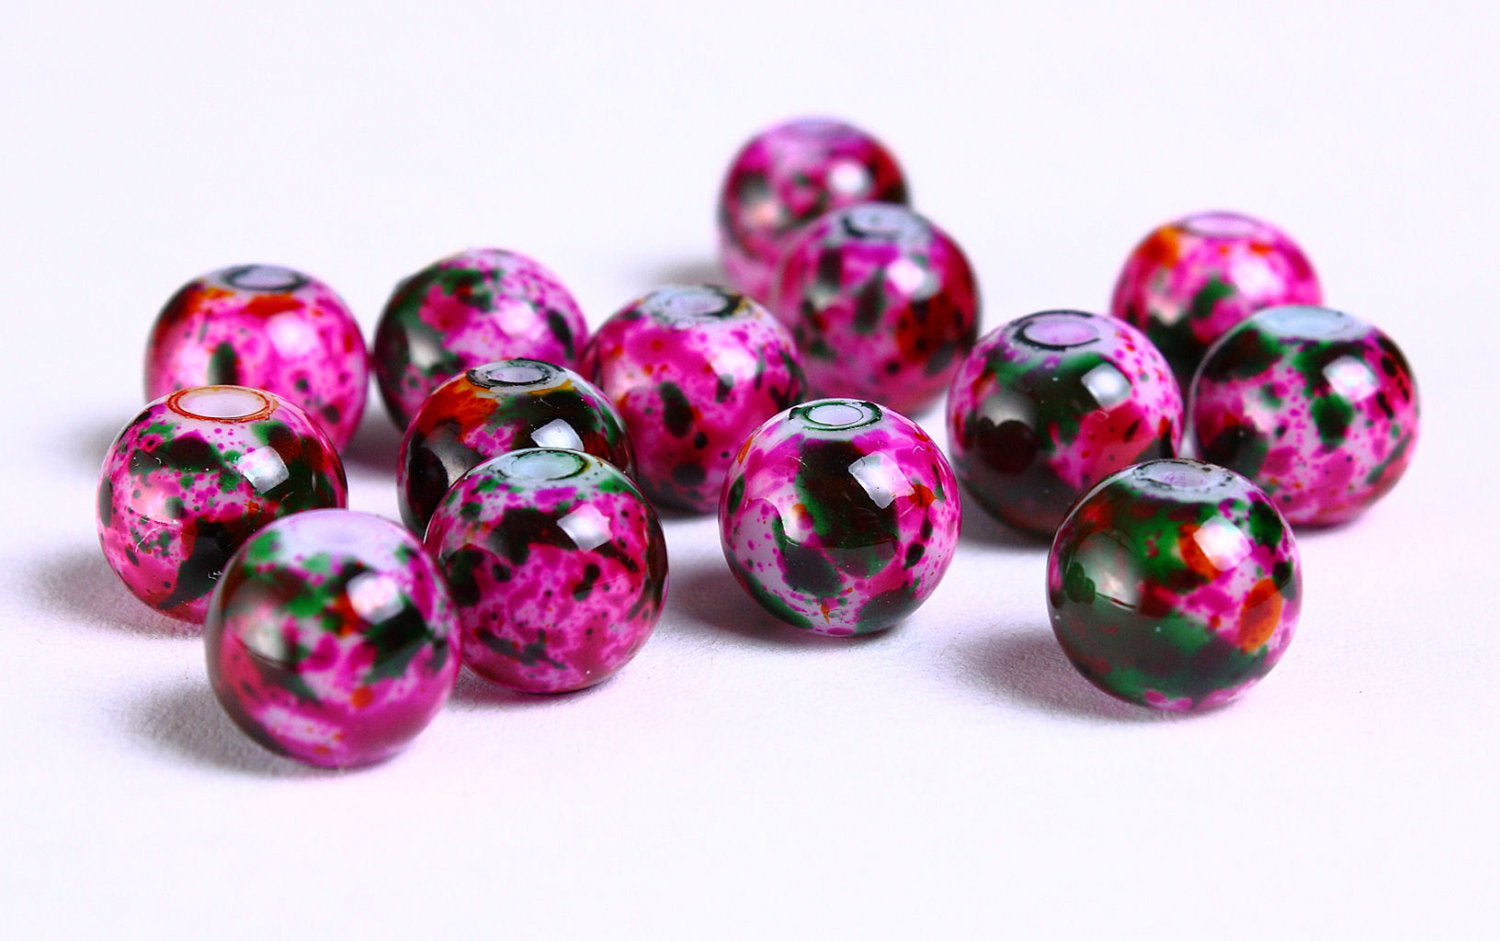 8mm hot pink green beads - 8mm round glass bead - 8mm opaque beads - 14 pieces (913)